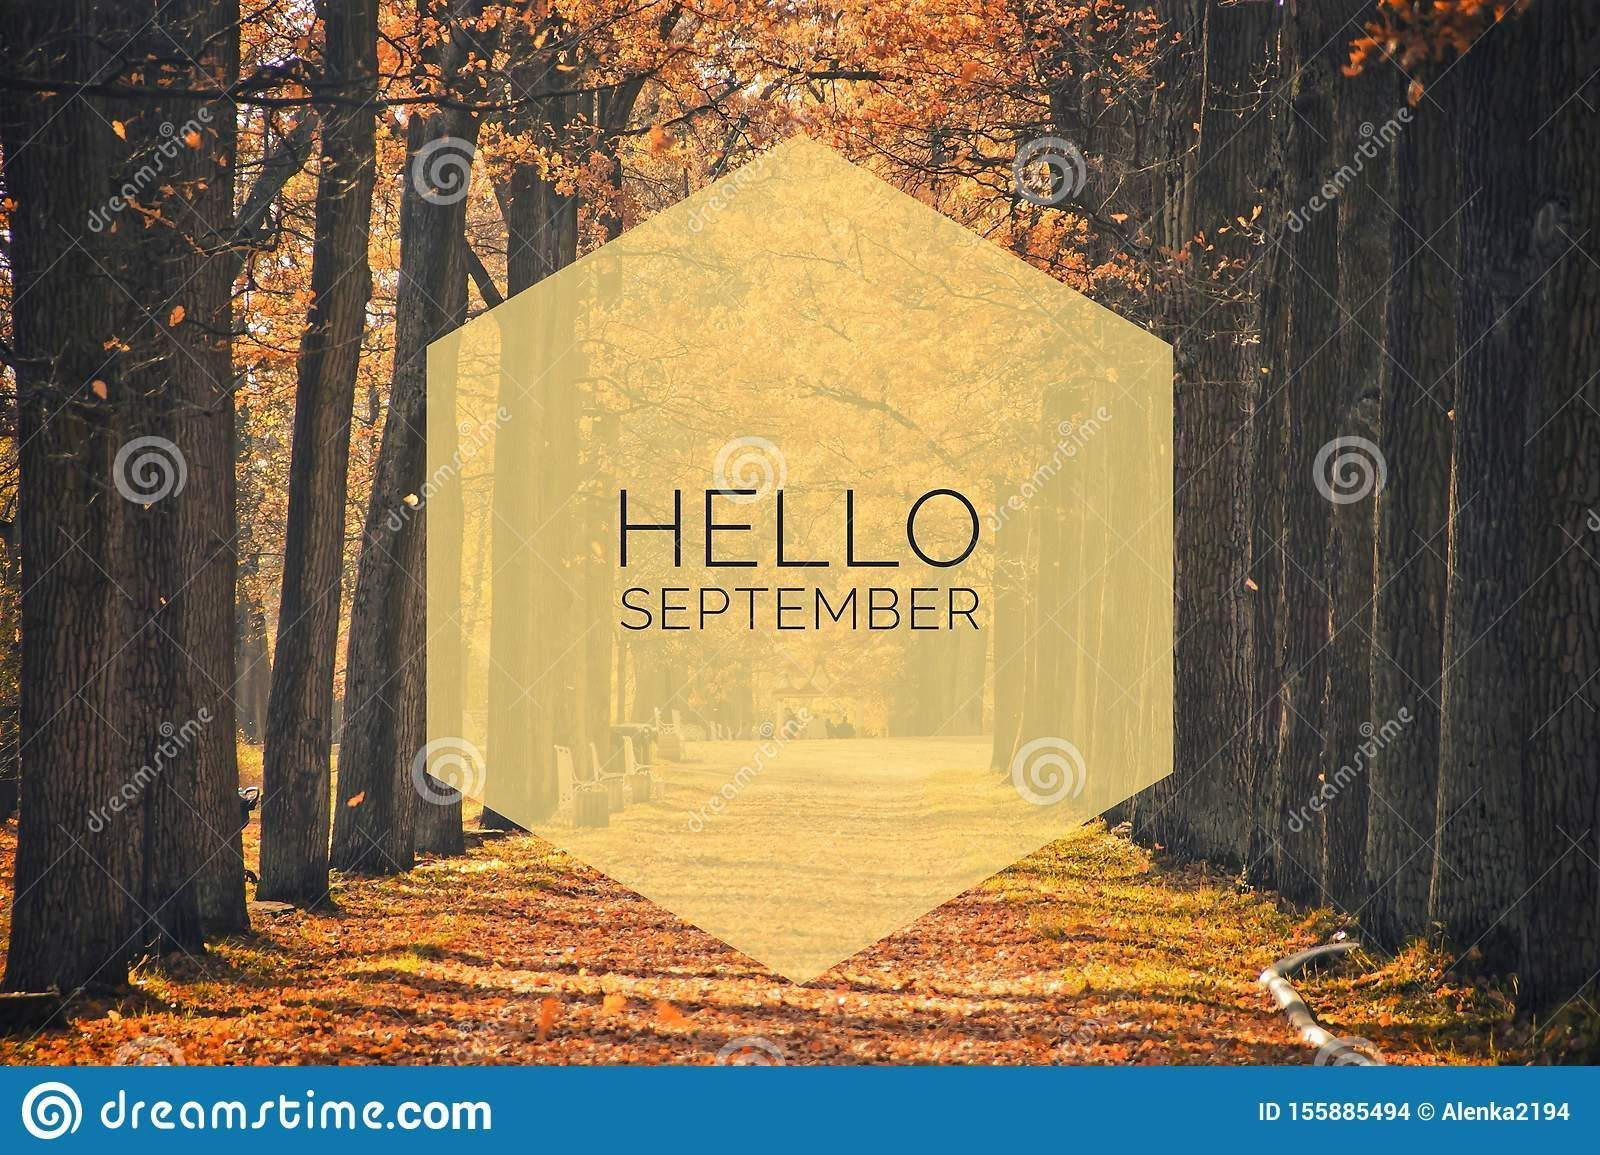 Photo about Hello September banner. New month. Greeting card. Golden autumn. The text in the photo. Seasons. Trees in the park. City Park. Autumn Park. Image of golden, autumn, leaves - 155885494 #helloseptember Photo about Hello September banner. New month. Greeting card. Golden autumn. The text in the photo. Seasons. Trees in the park. City Park. Autumn Park. Image of golden, autumn, leaves - 155885494 #helloseptember Photo about Hello September banner. New month. Greeting card. Golden autumn. #helloseptember